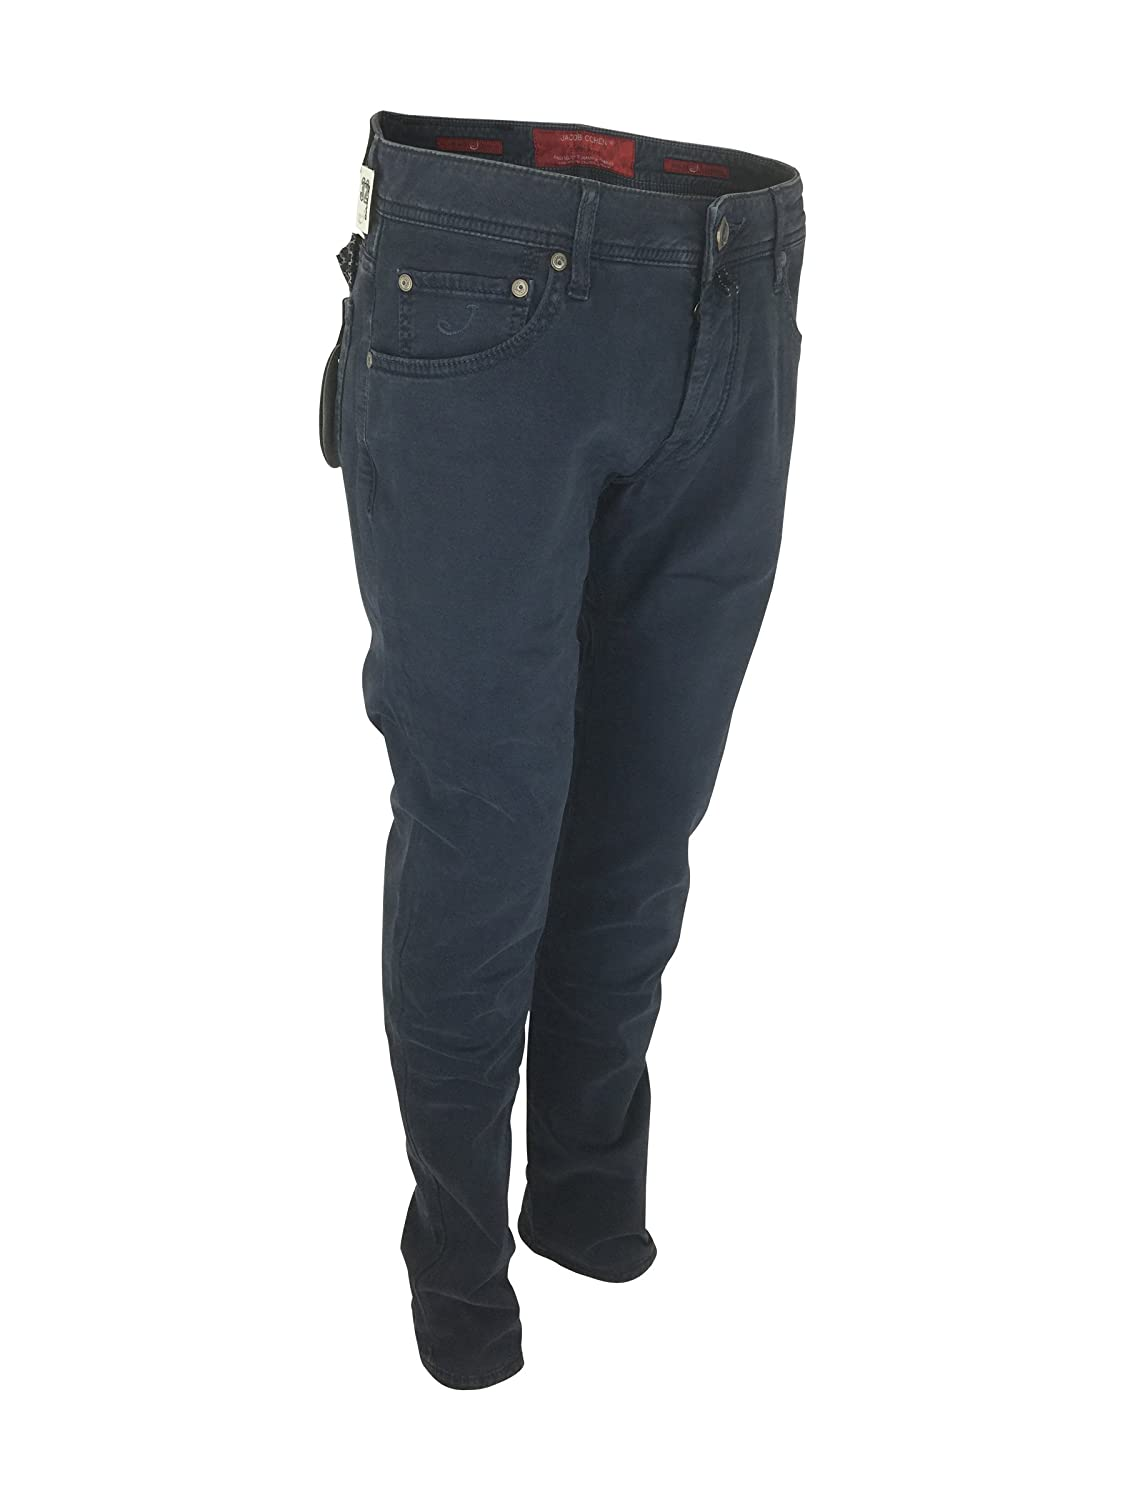 ed1e55755c694d Jacob Cohen J622 08871 920 Comfort Vintage Fit Chino Jeans in Blue W33:  Amazon.co.uk: Clothing